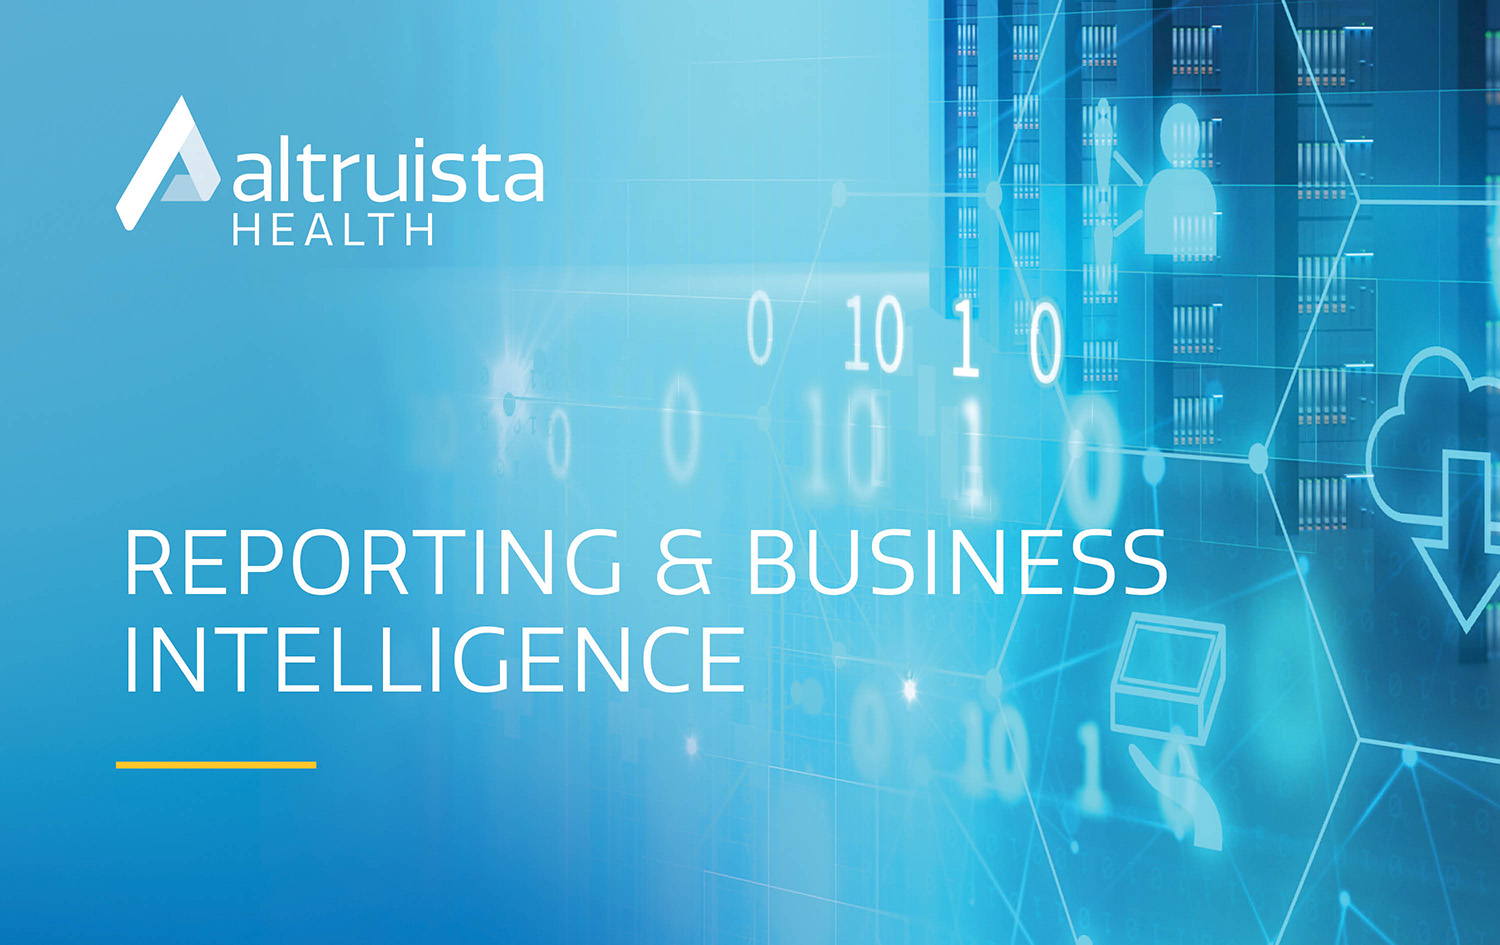 Reporting & Business Intelligence_Product Sheet_Altruista-Health